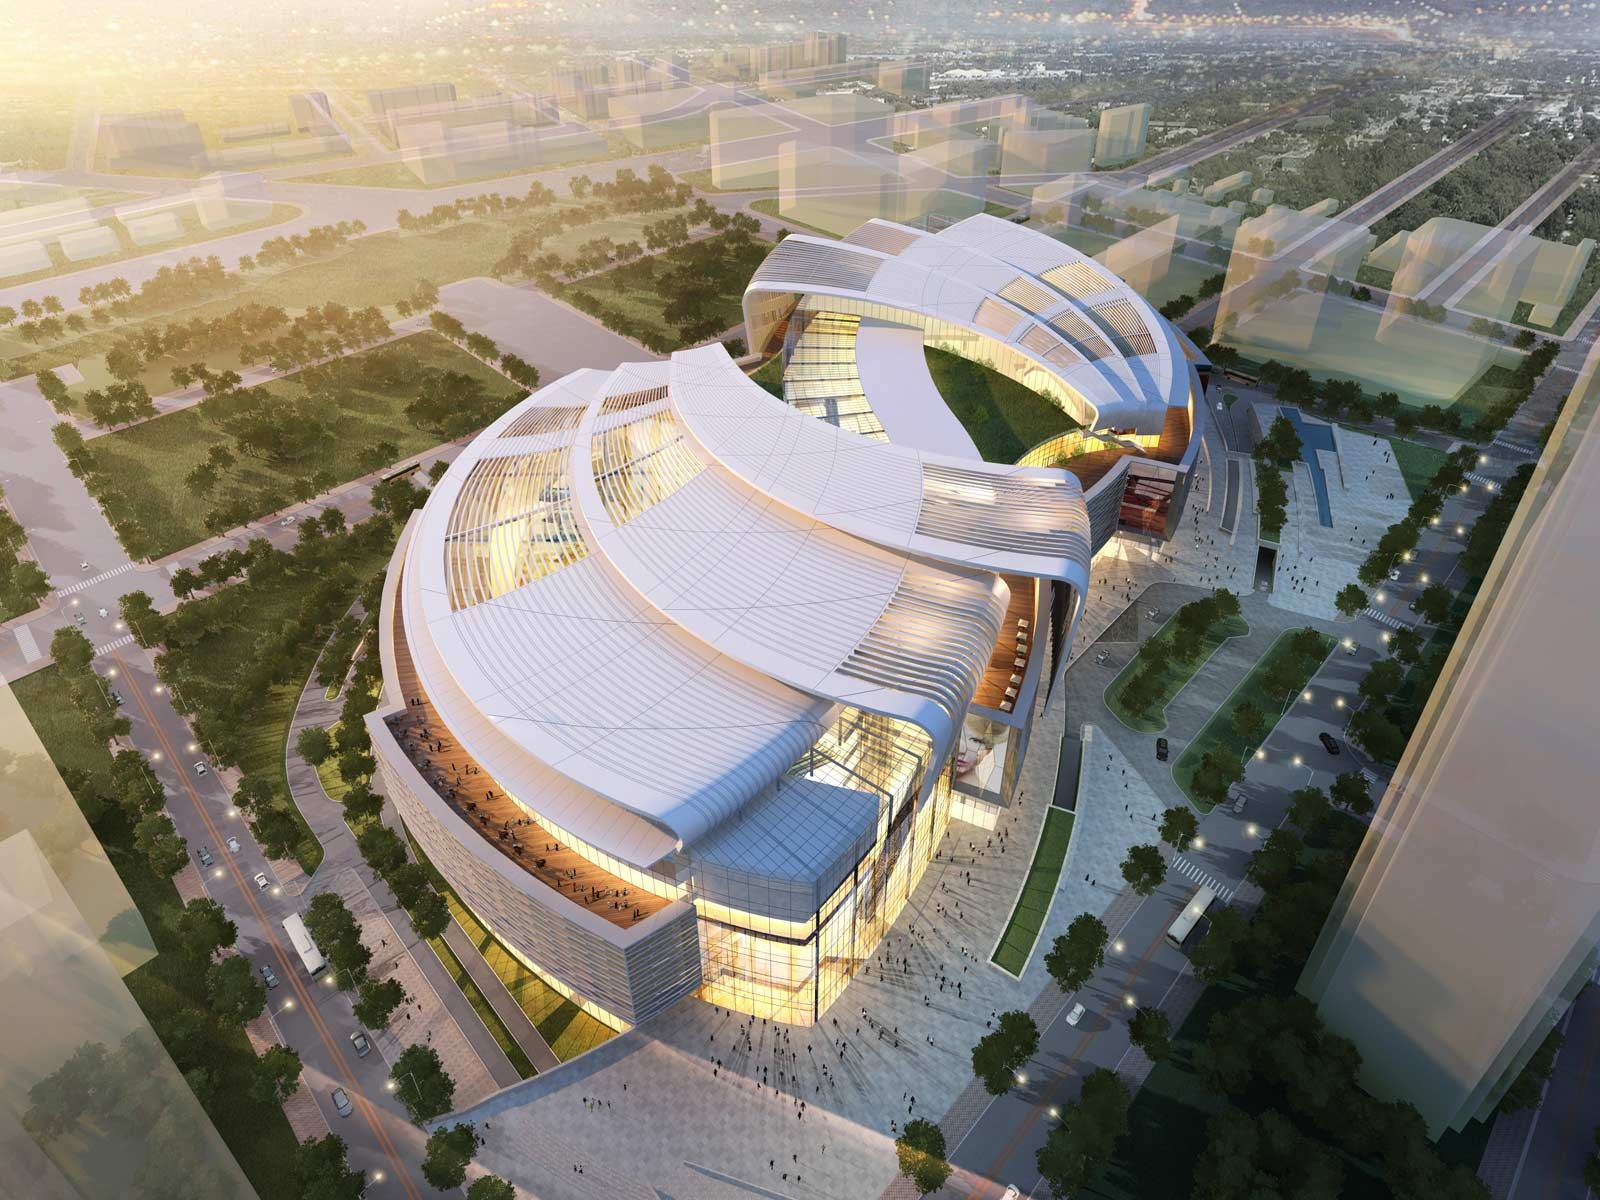 The Olympia 66 In Dalian China Arch Shopping Center